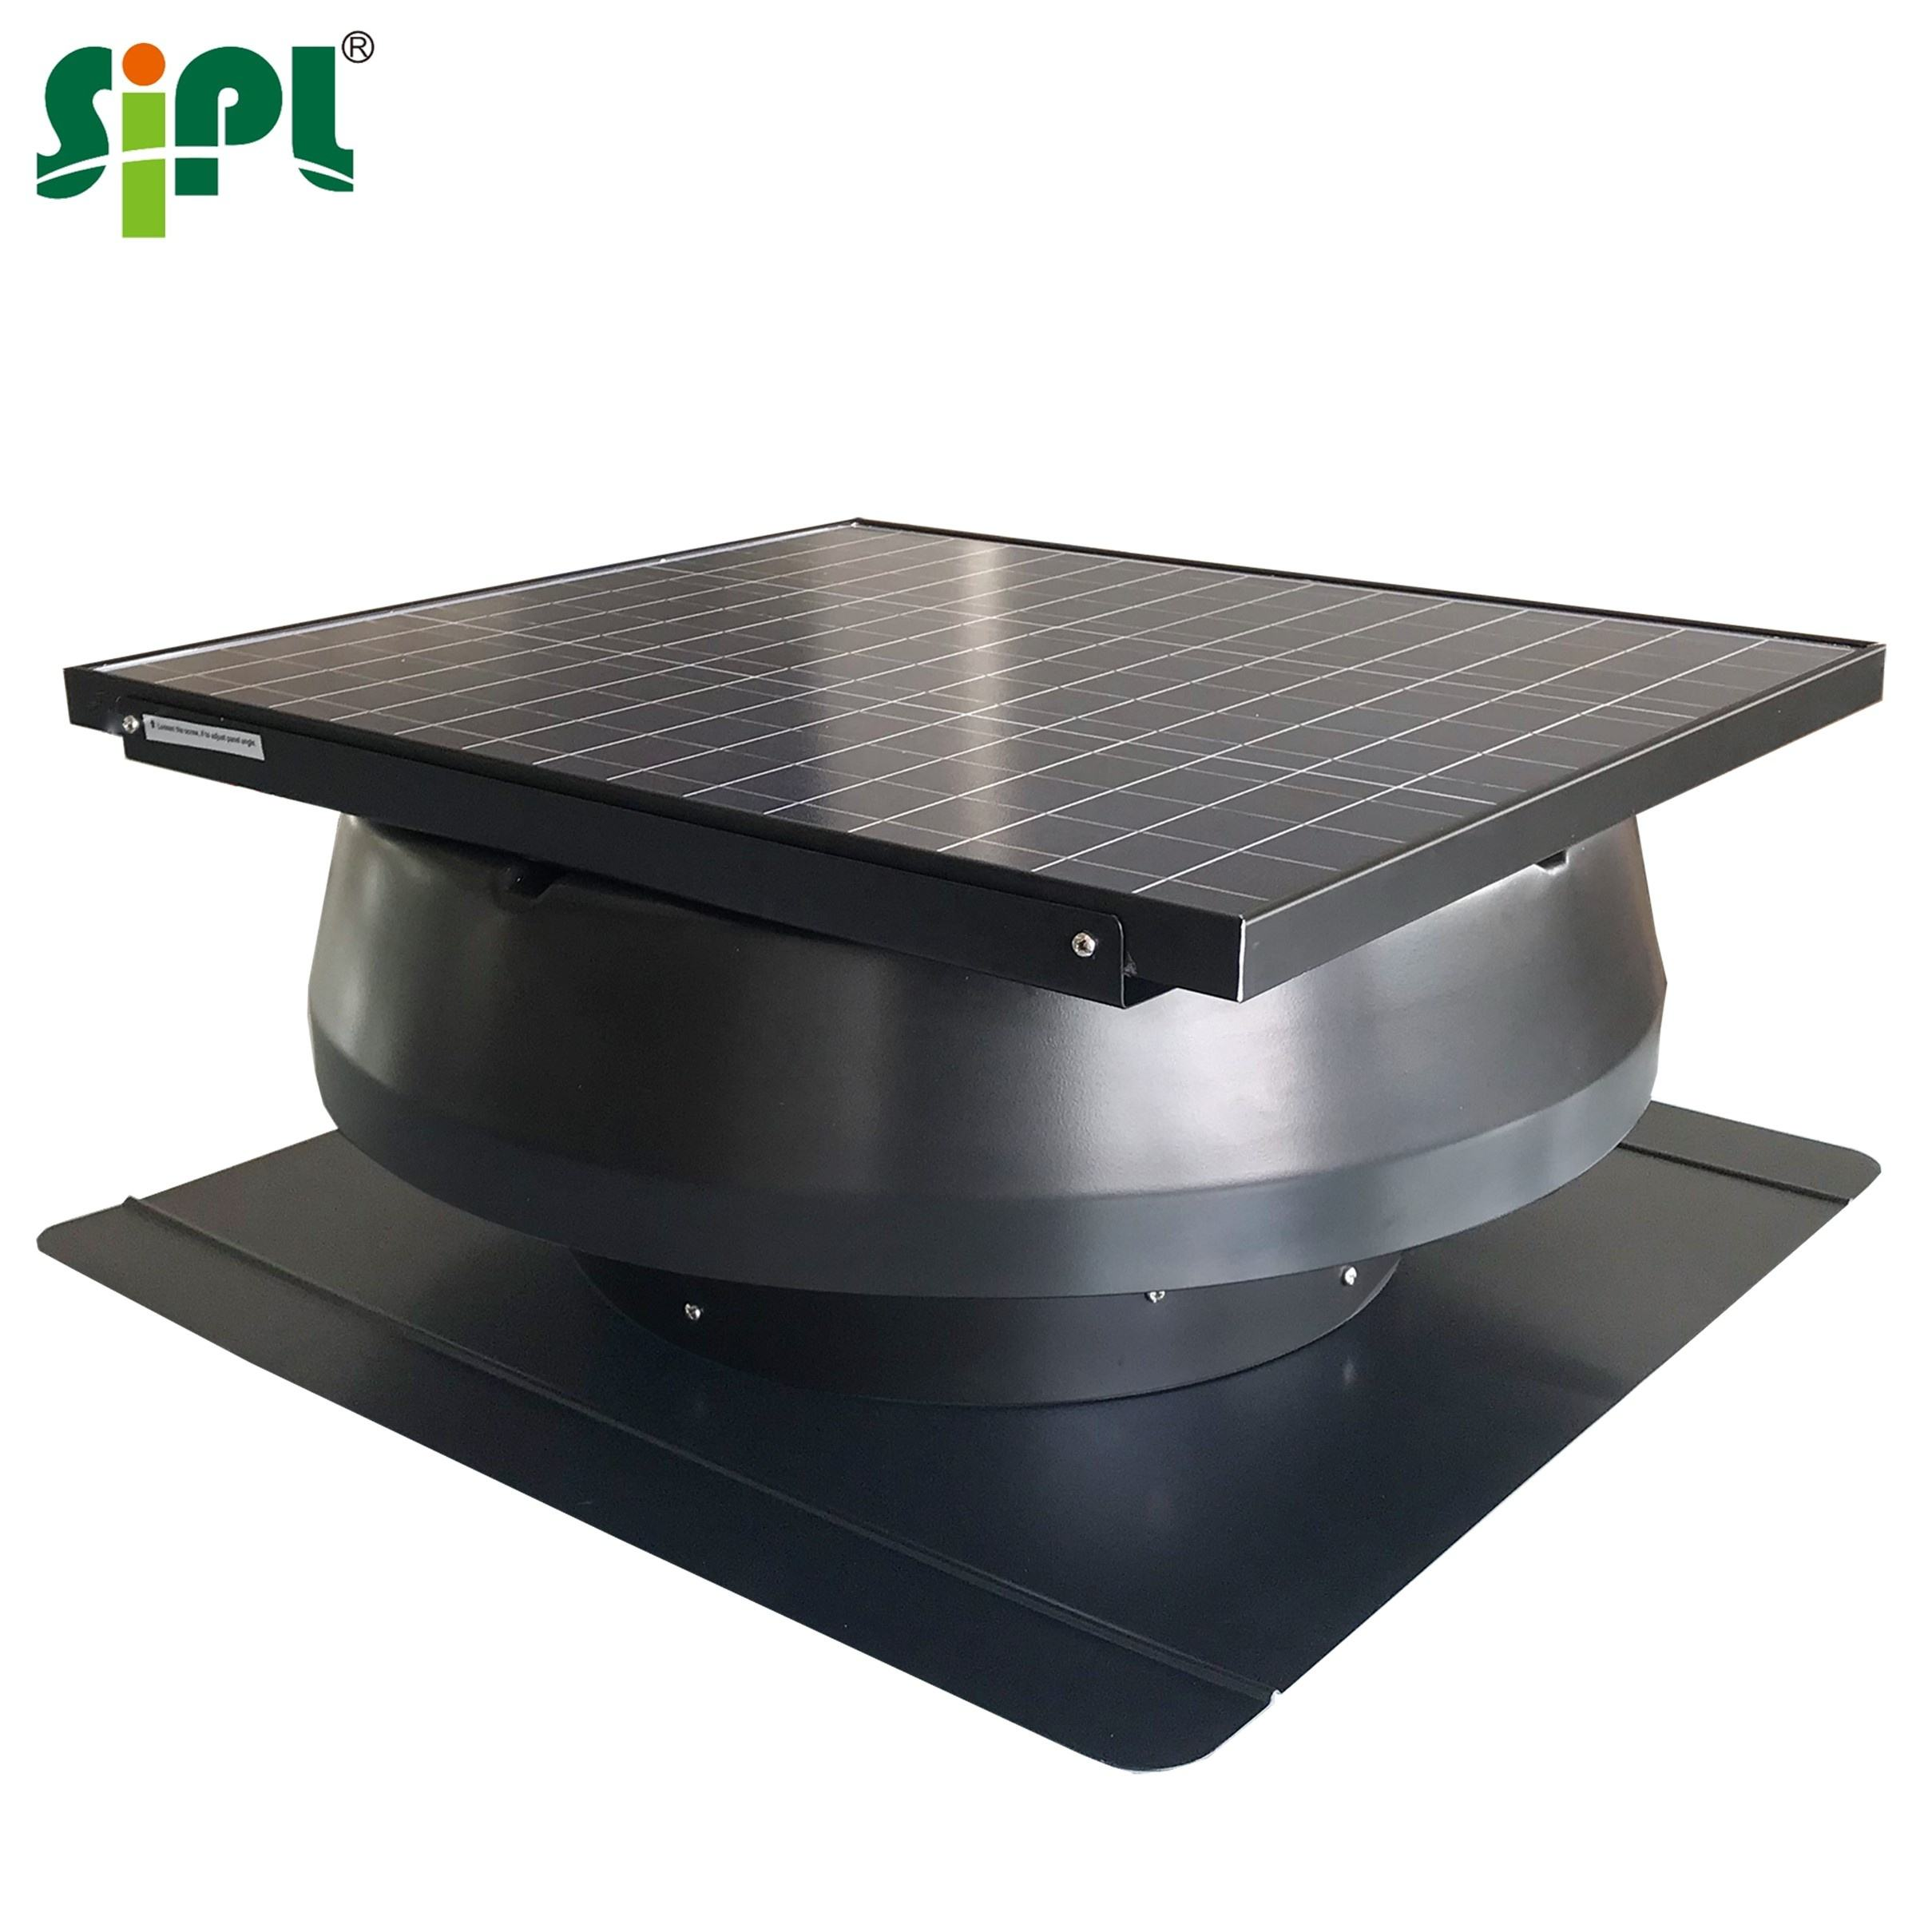 Hardware HVAC New Product Sunny Eco Ventilation Tool 50W Solar Centrifugal Axial Air Fan Blower Attic Gable Roof Fan Exhaust Fan